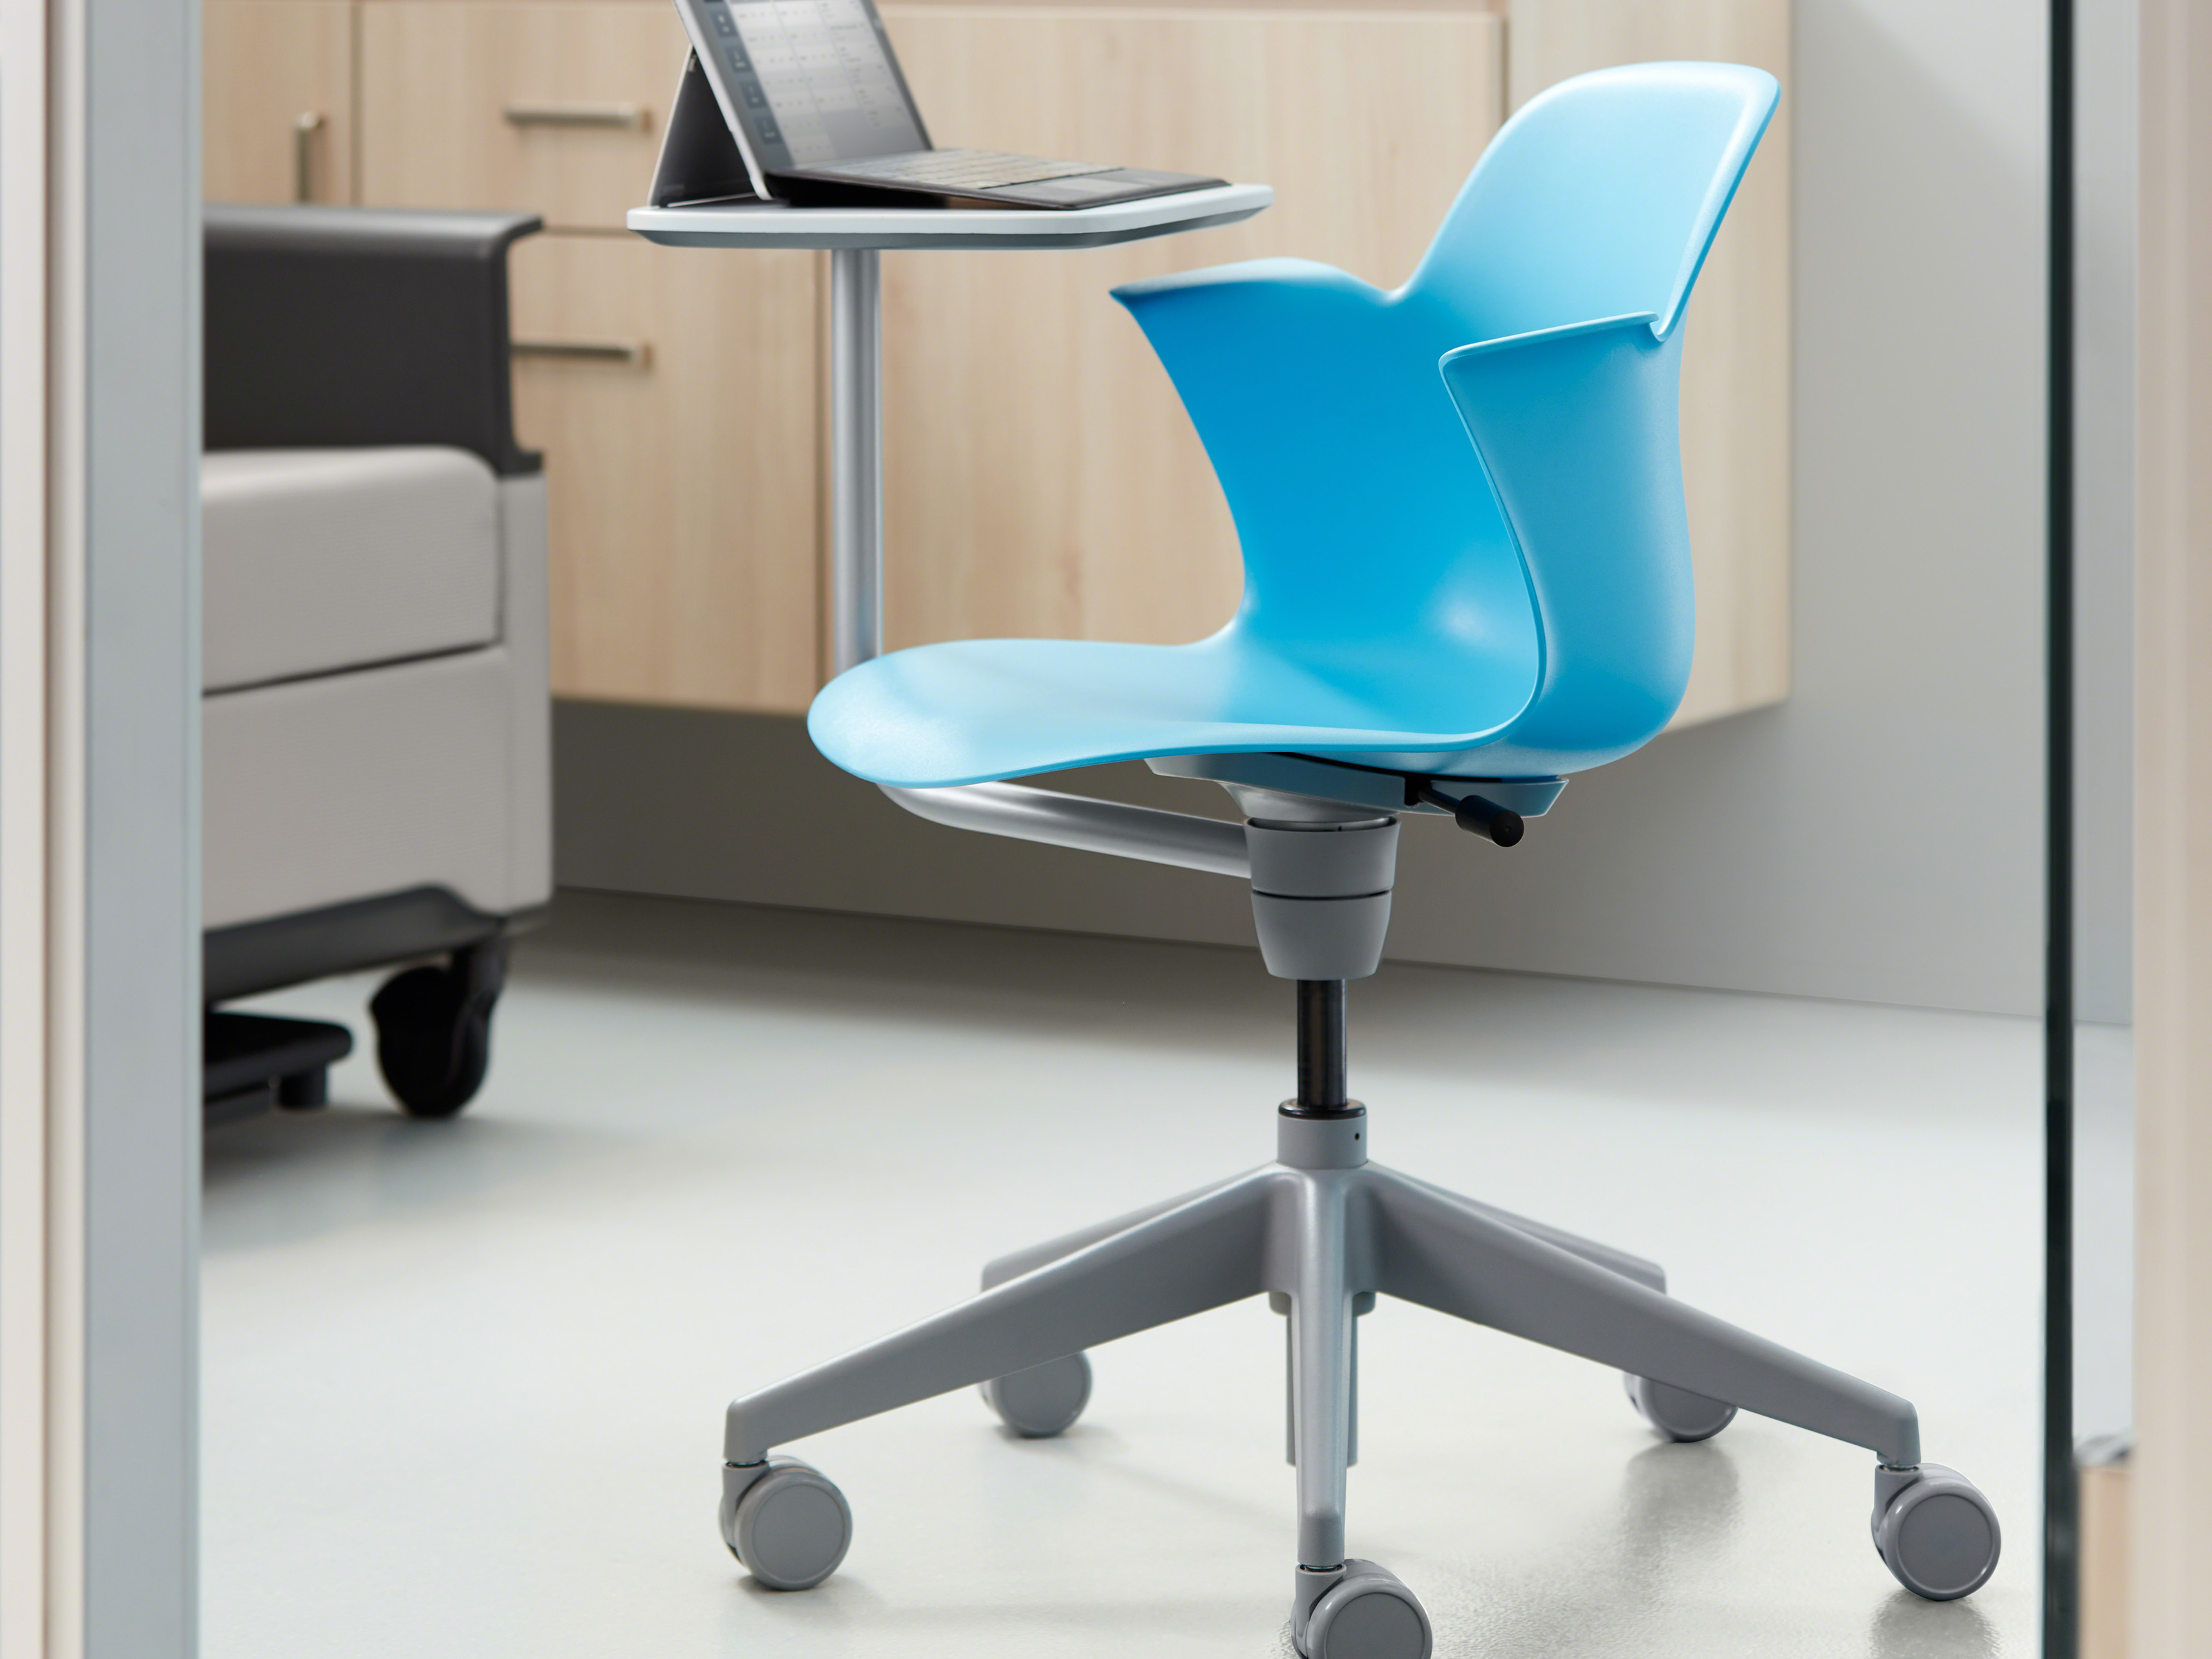 Connected waiting room chairs - Featured Products